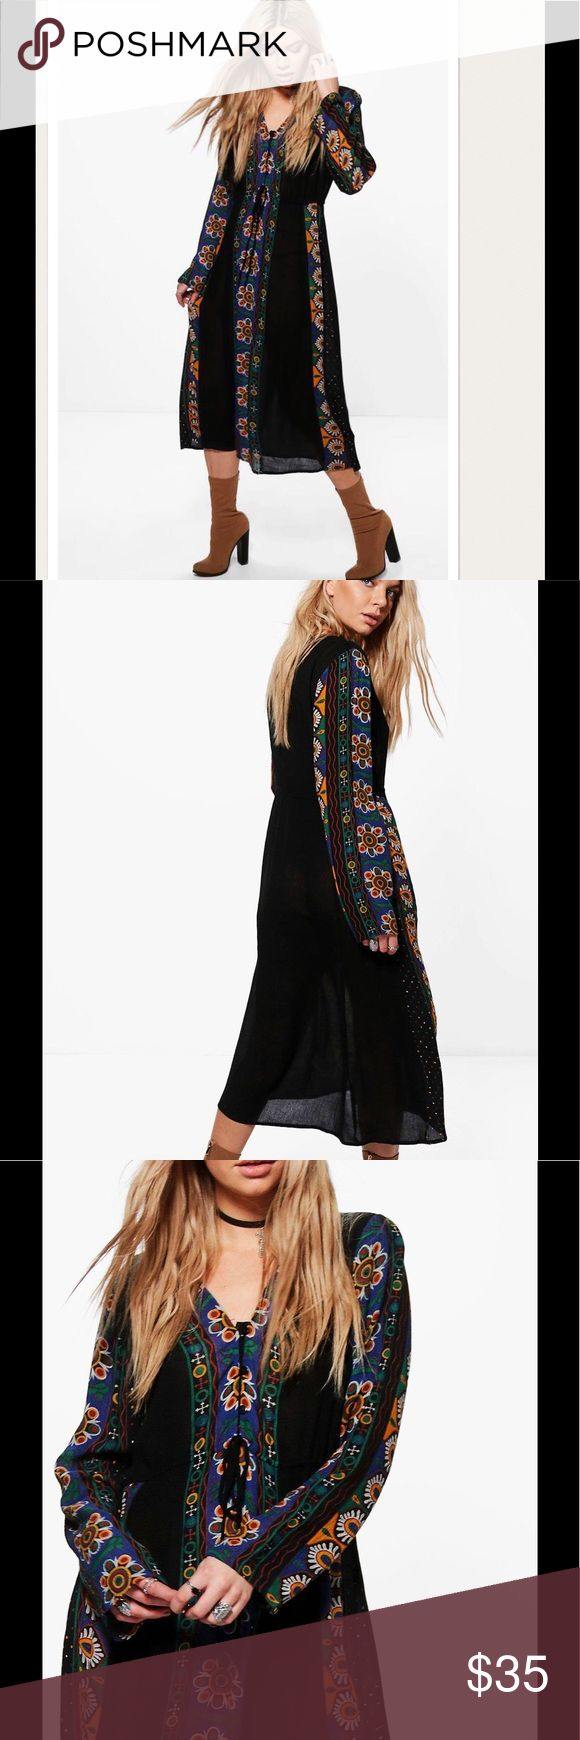 "🌸COMING SOON 🌸 NWT Boho Maxi Dress Brand sold At Asos.com. Unlined. 100% Viscose. Flat Measurement of Garment: Shoulder To Hem 43"", Bust 30"" Machine Wash. Model Wears Size 6. Asos Dresses Maxi"